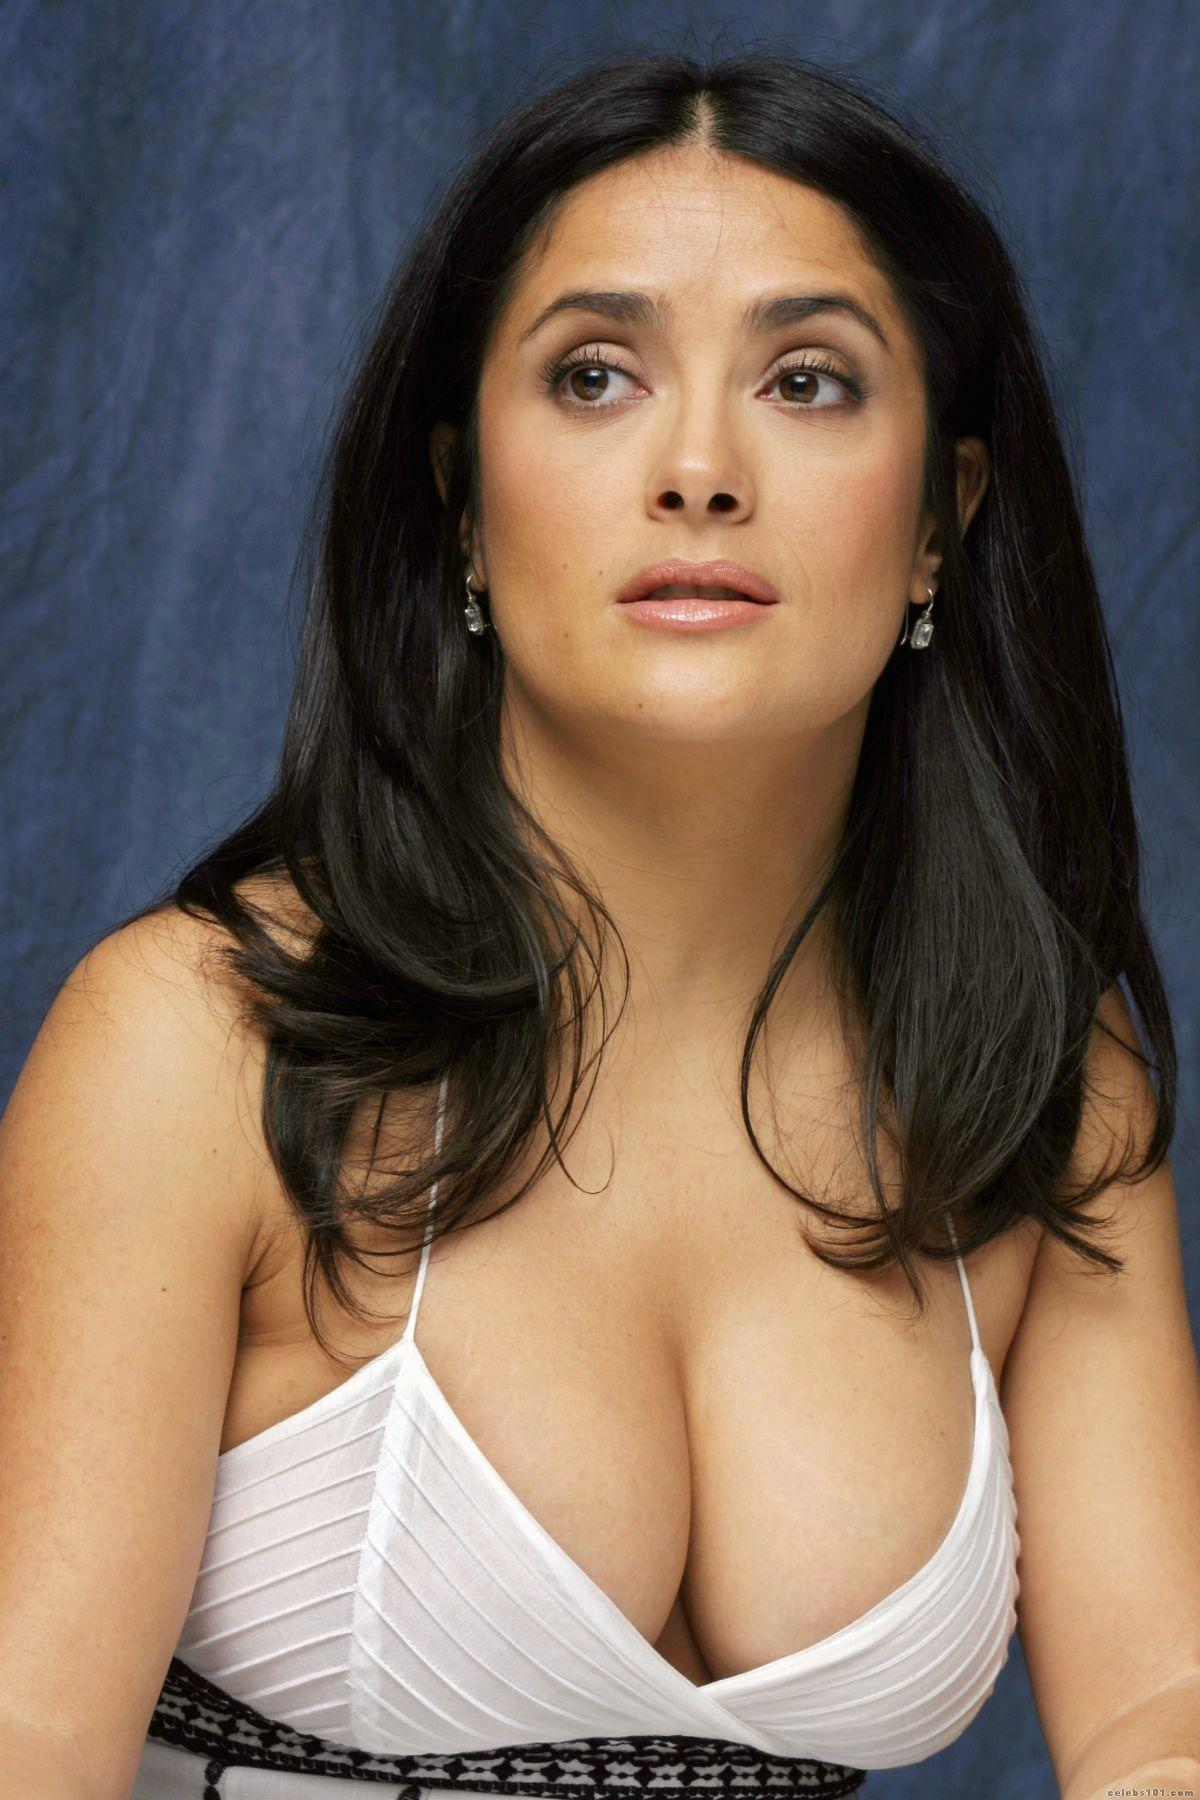 salma hayek fan